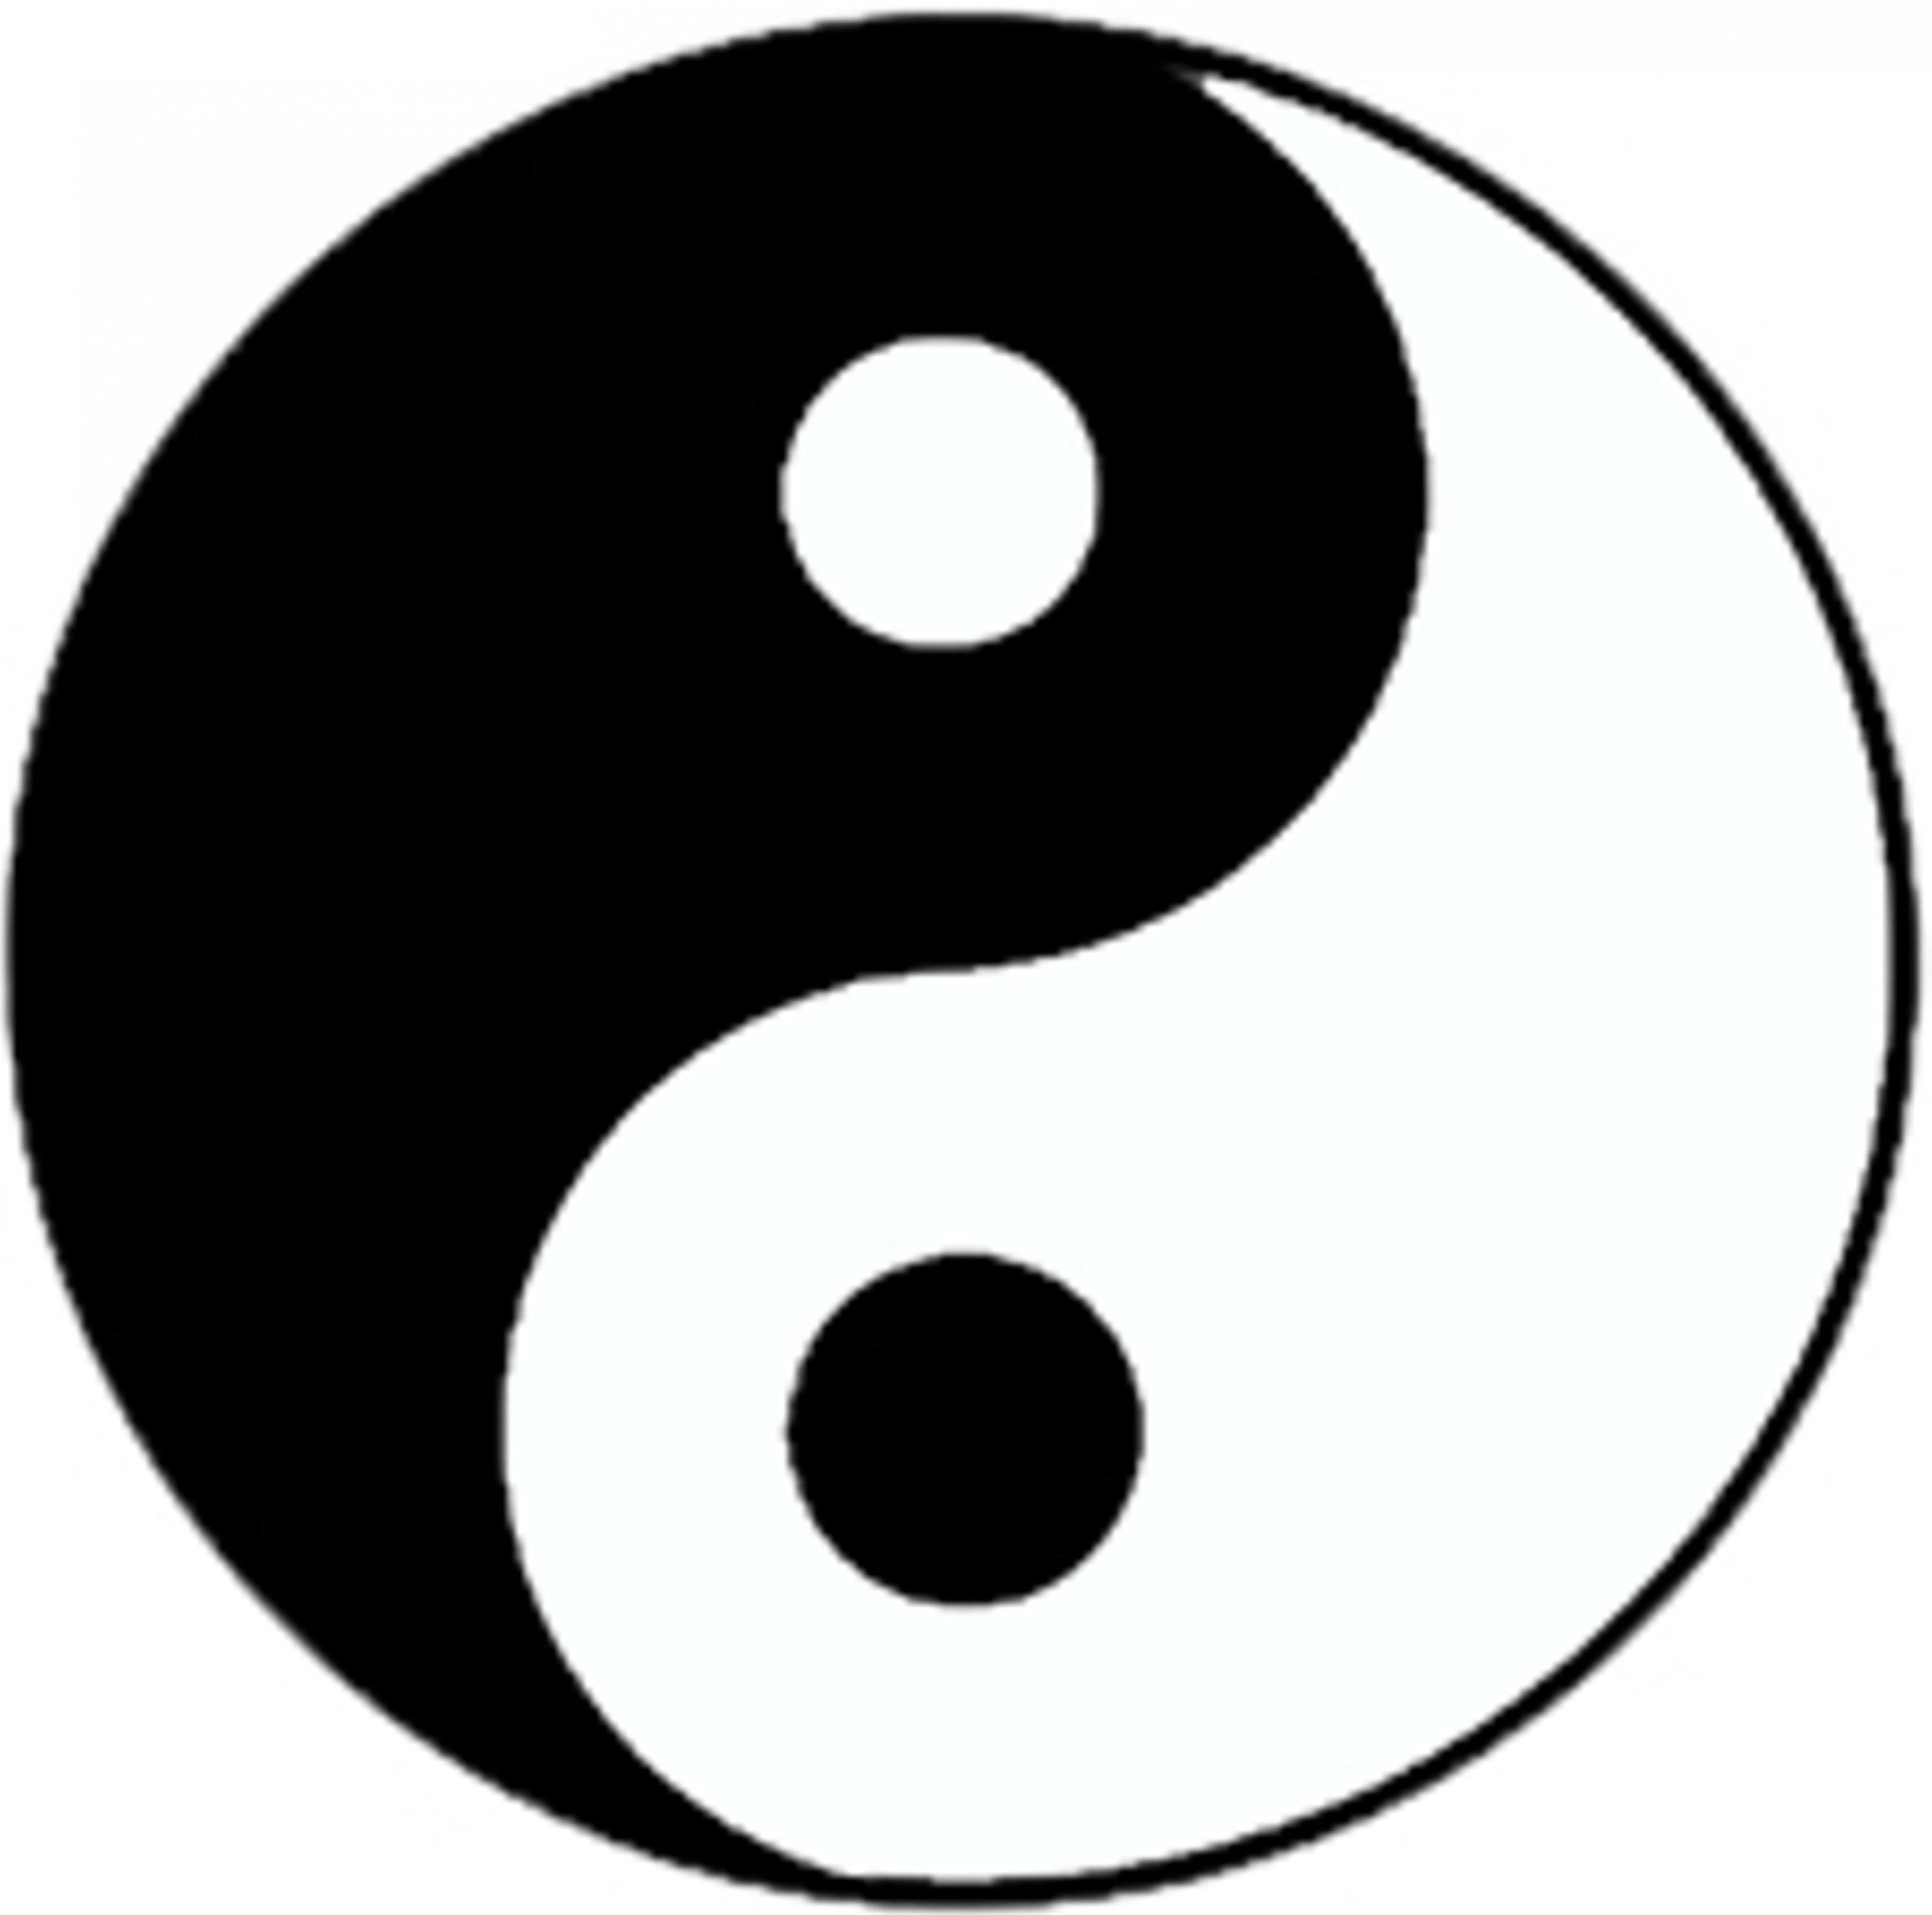 Sticker Yin Yang Symbol For Accomplished Harmony 60 Mm Stickers